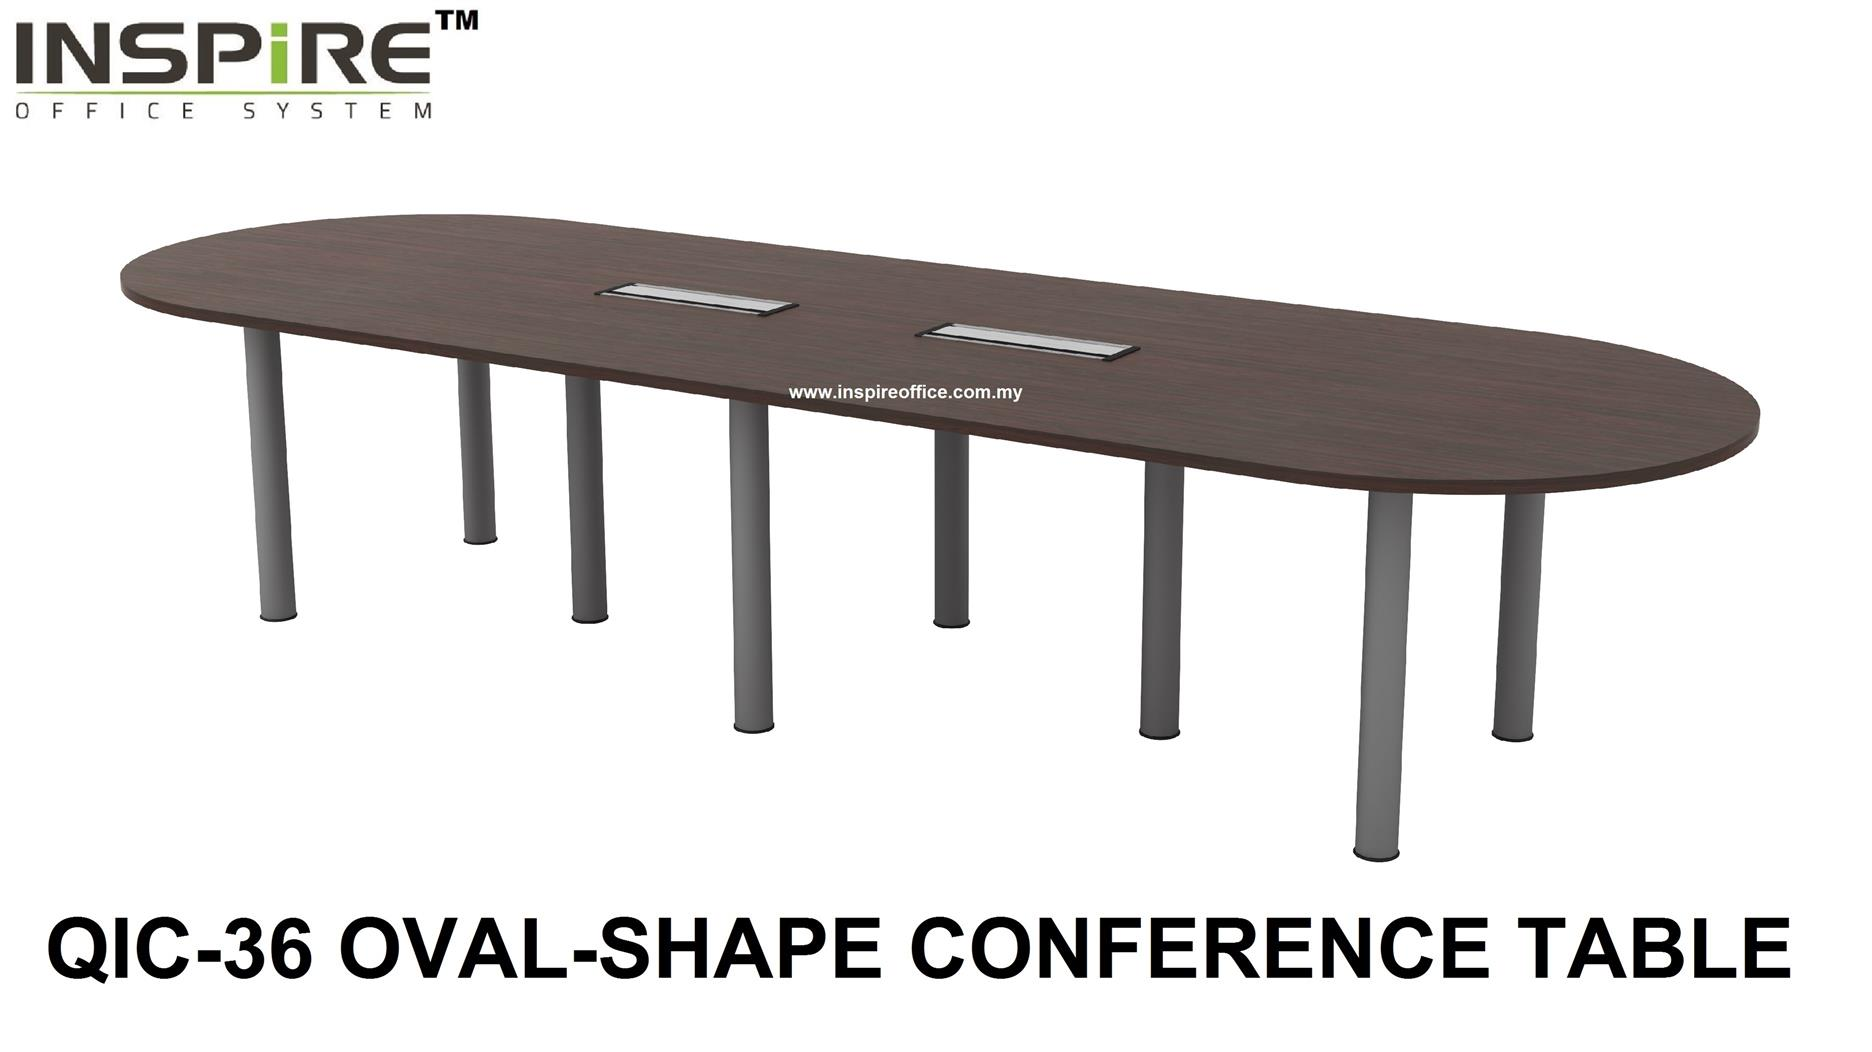 QIC-36 OVAL-SHAPE CONFERENCE TABLE